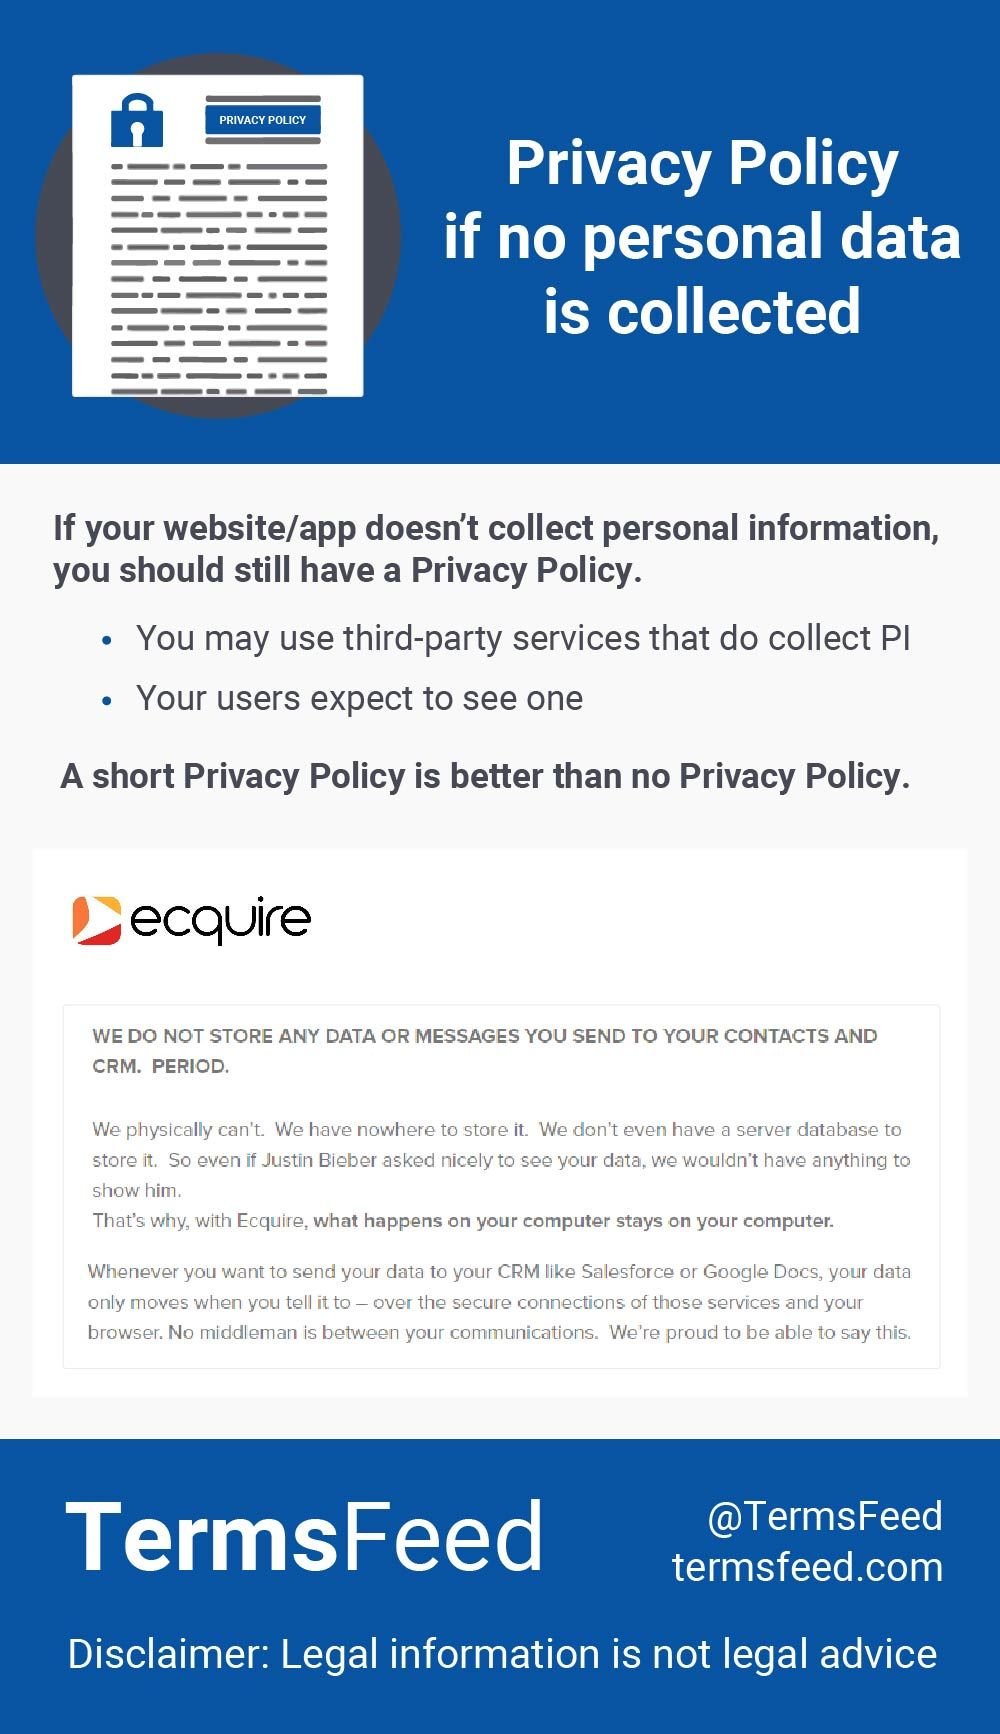 Privacy Policy If No Personal Data Is Collected Termsfeed Privacy Policy Policies Data